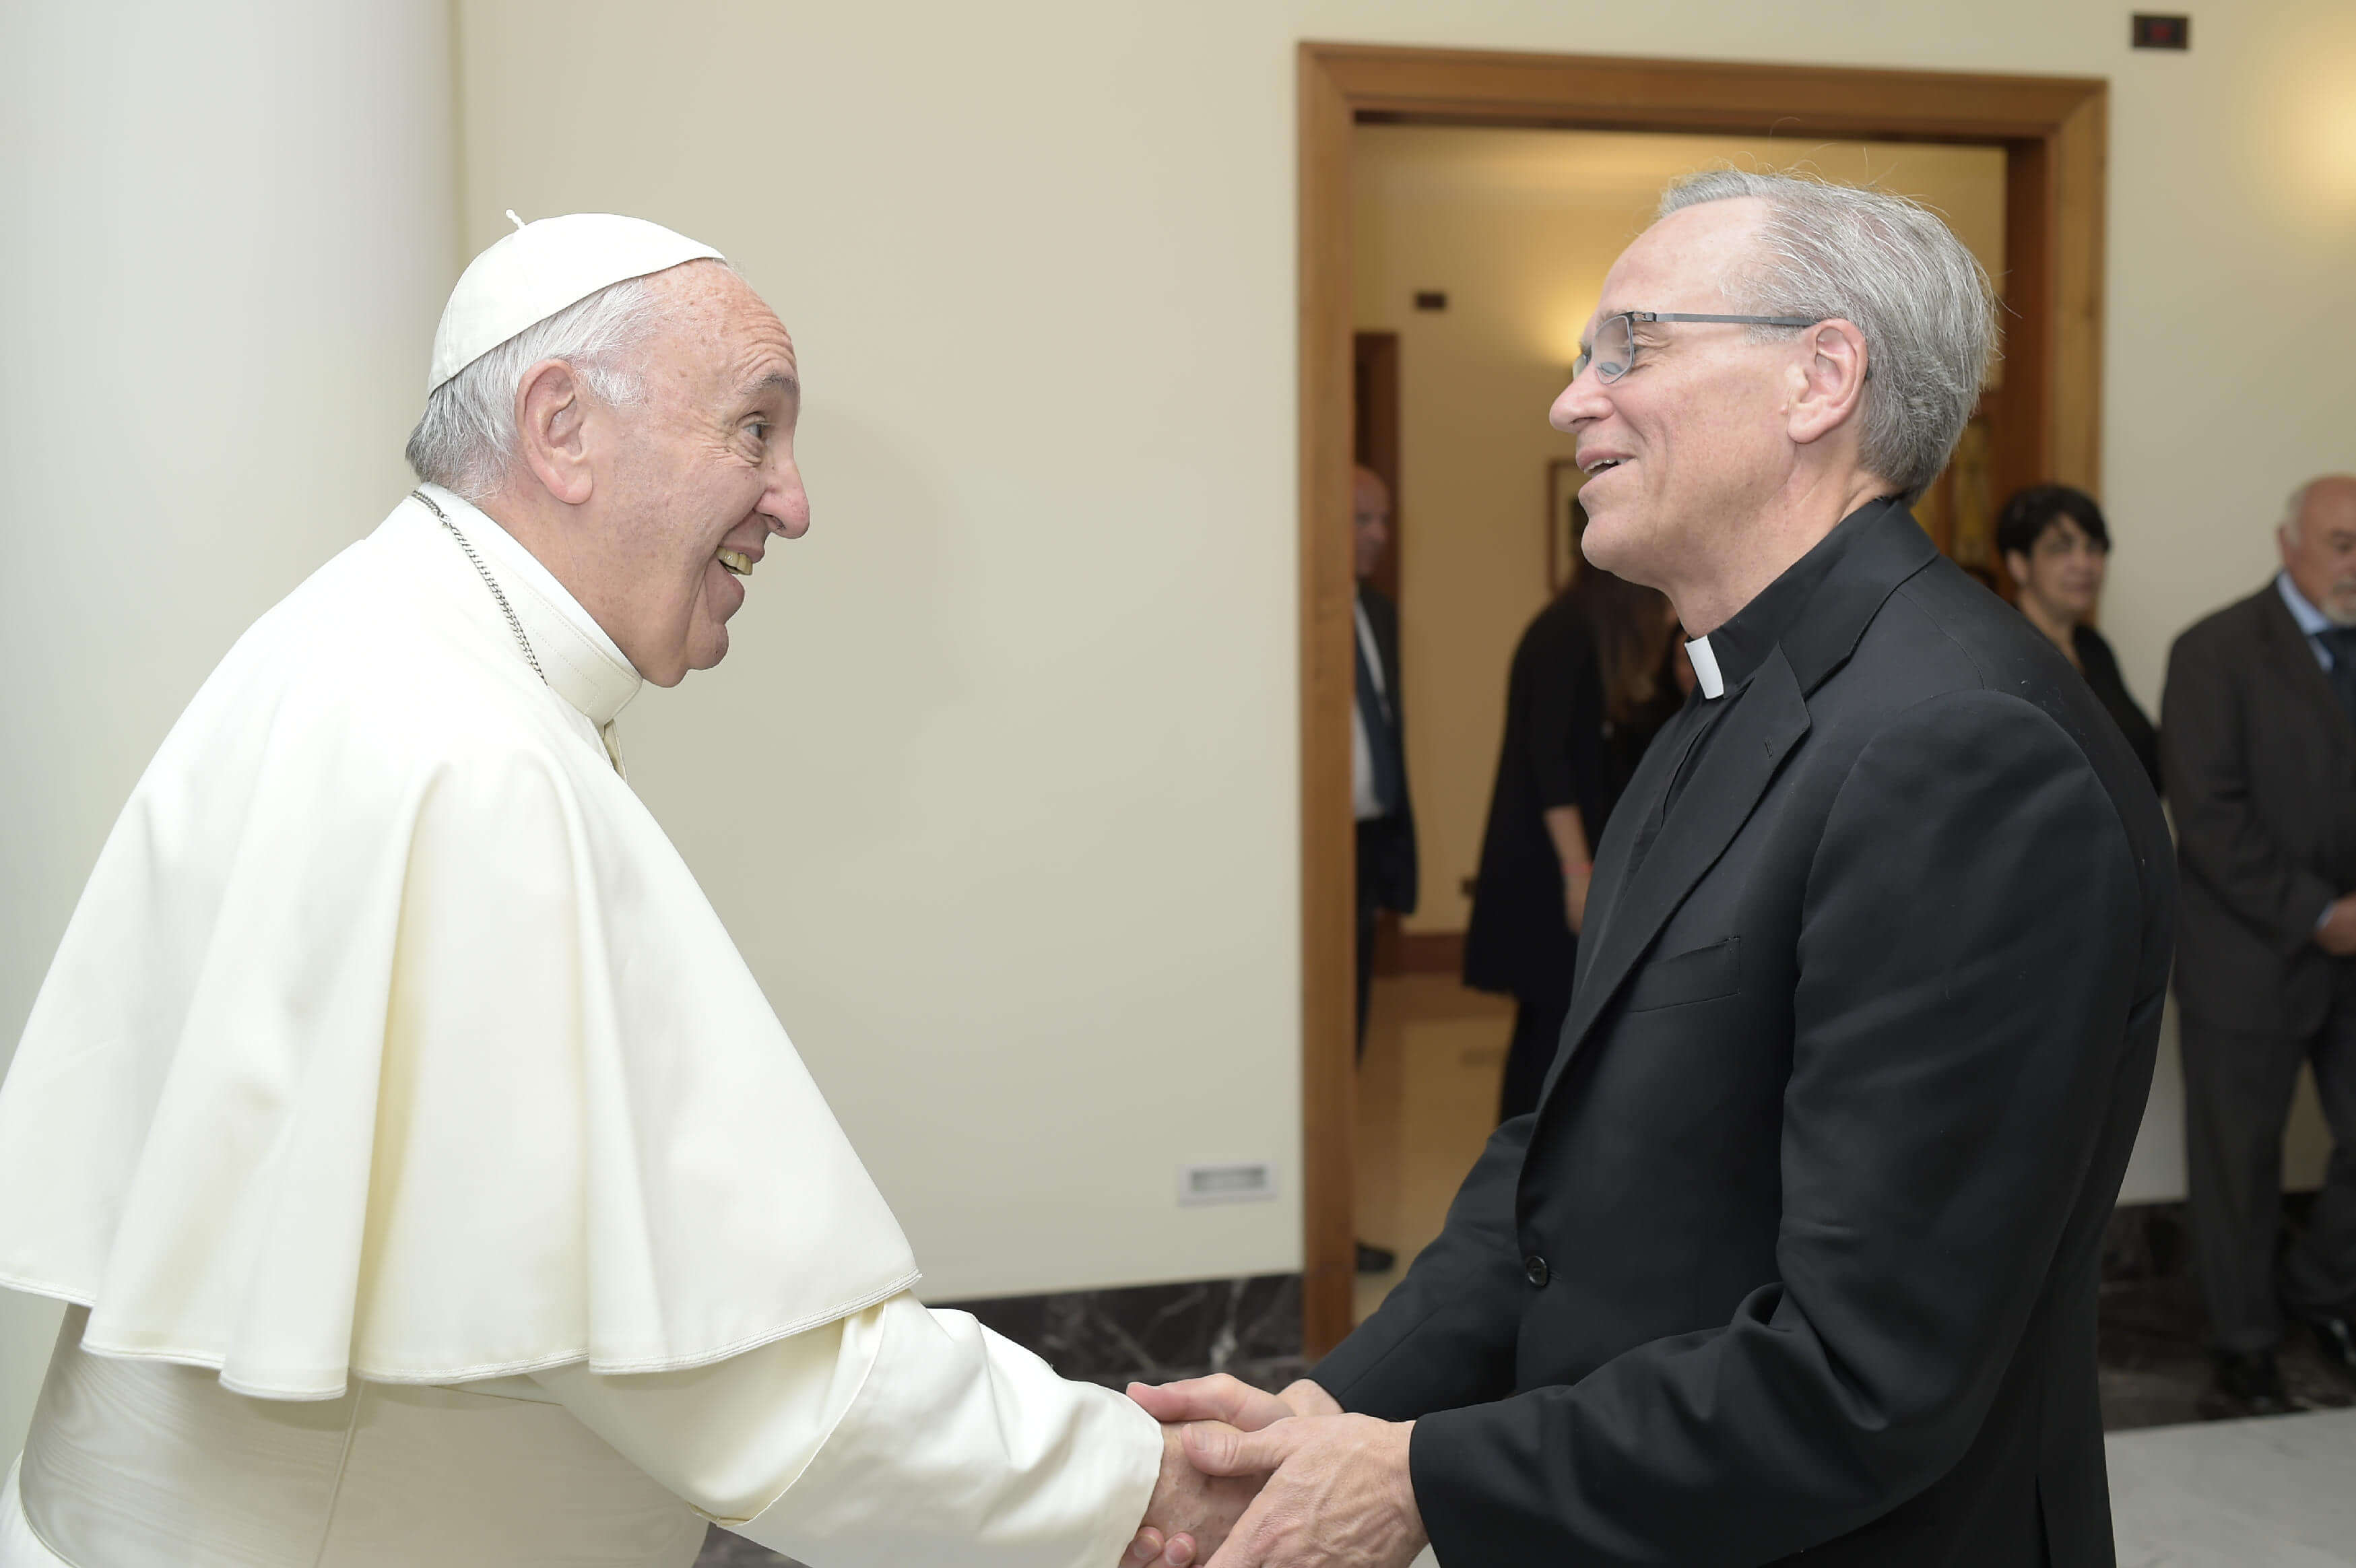 Rev. John I. Jenkins, C.S.C., shakes hands with His Holiness Pope Francis